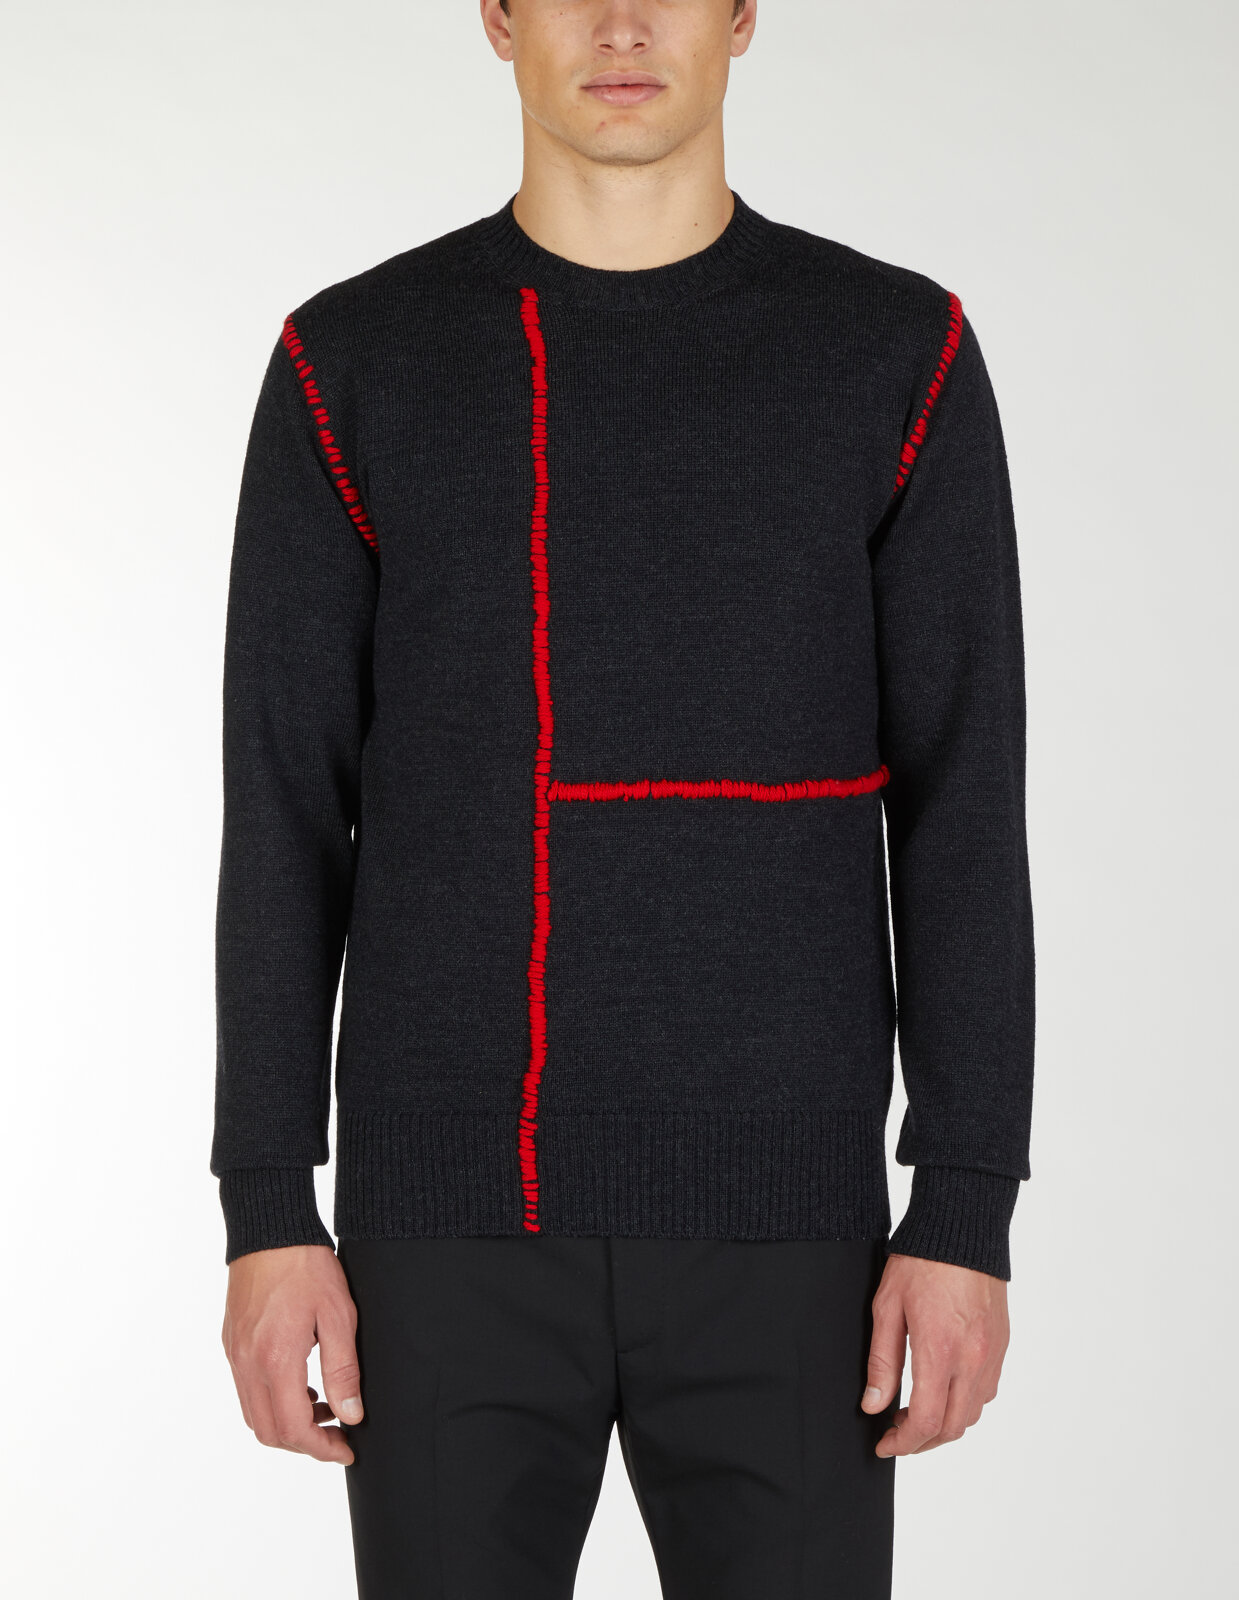 Round Neck Sweater With Cuts - Les Hommes